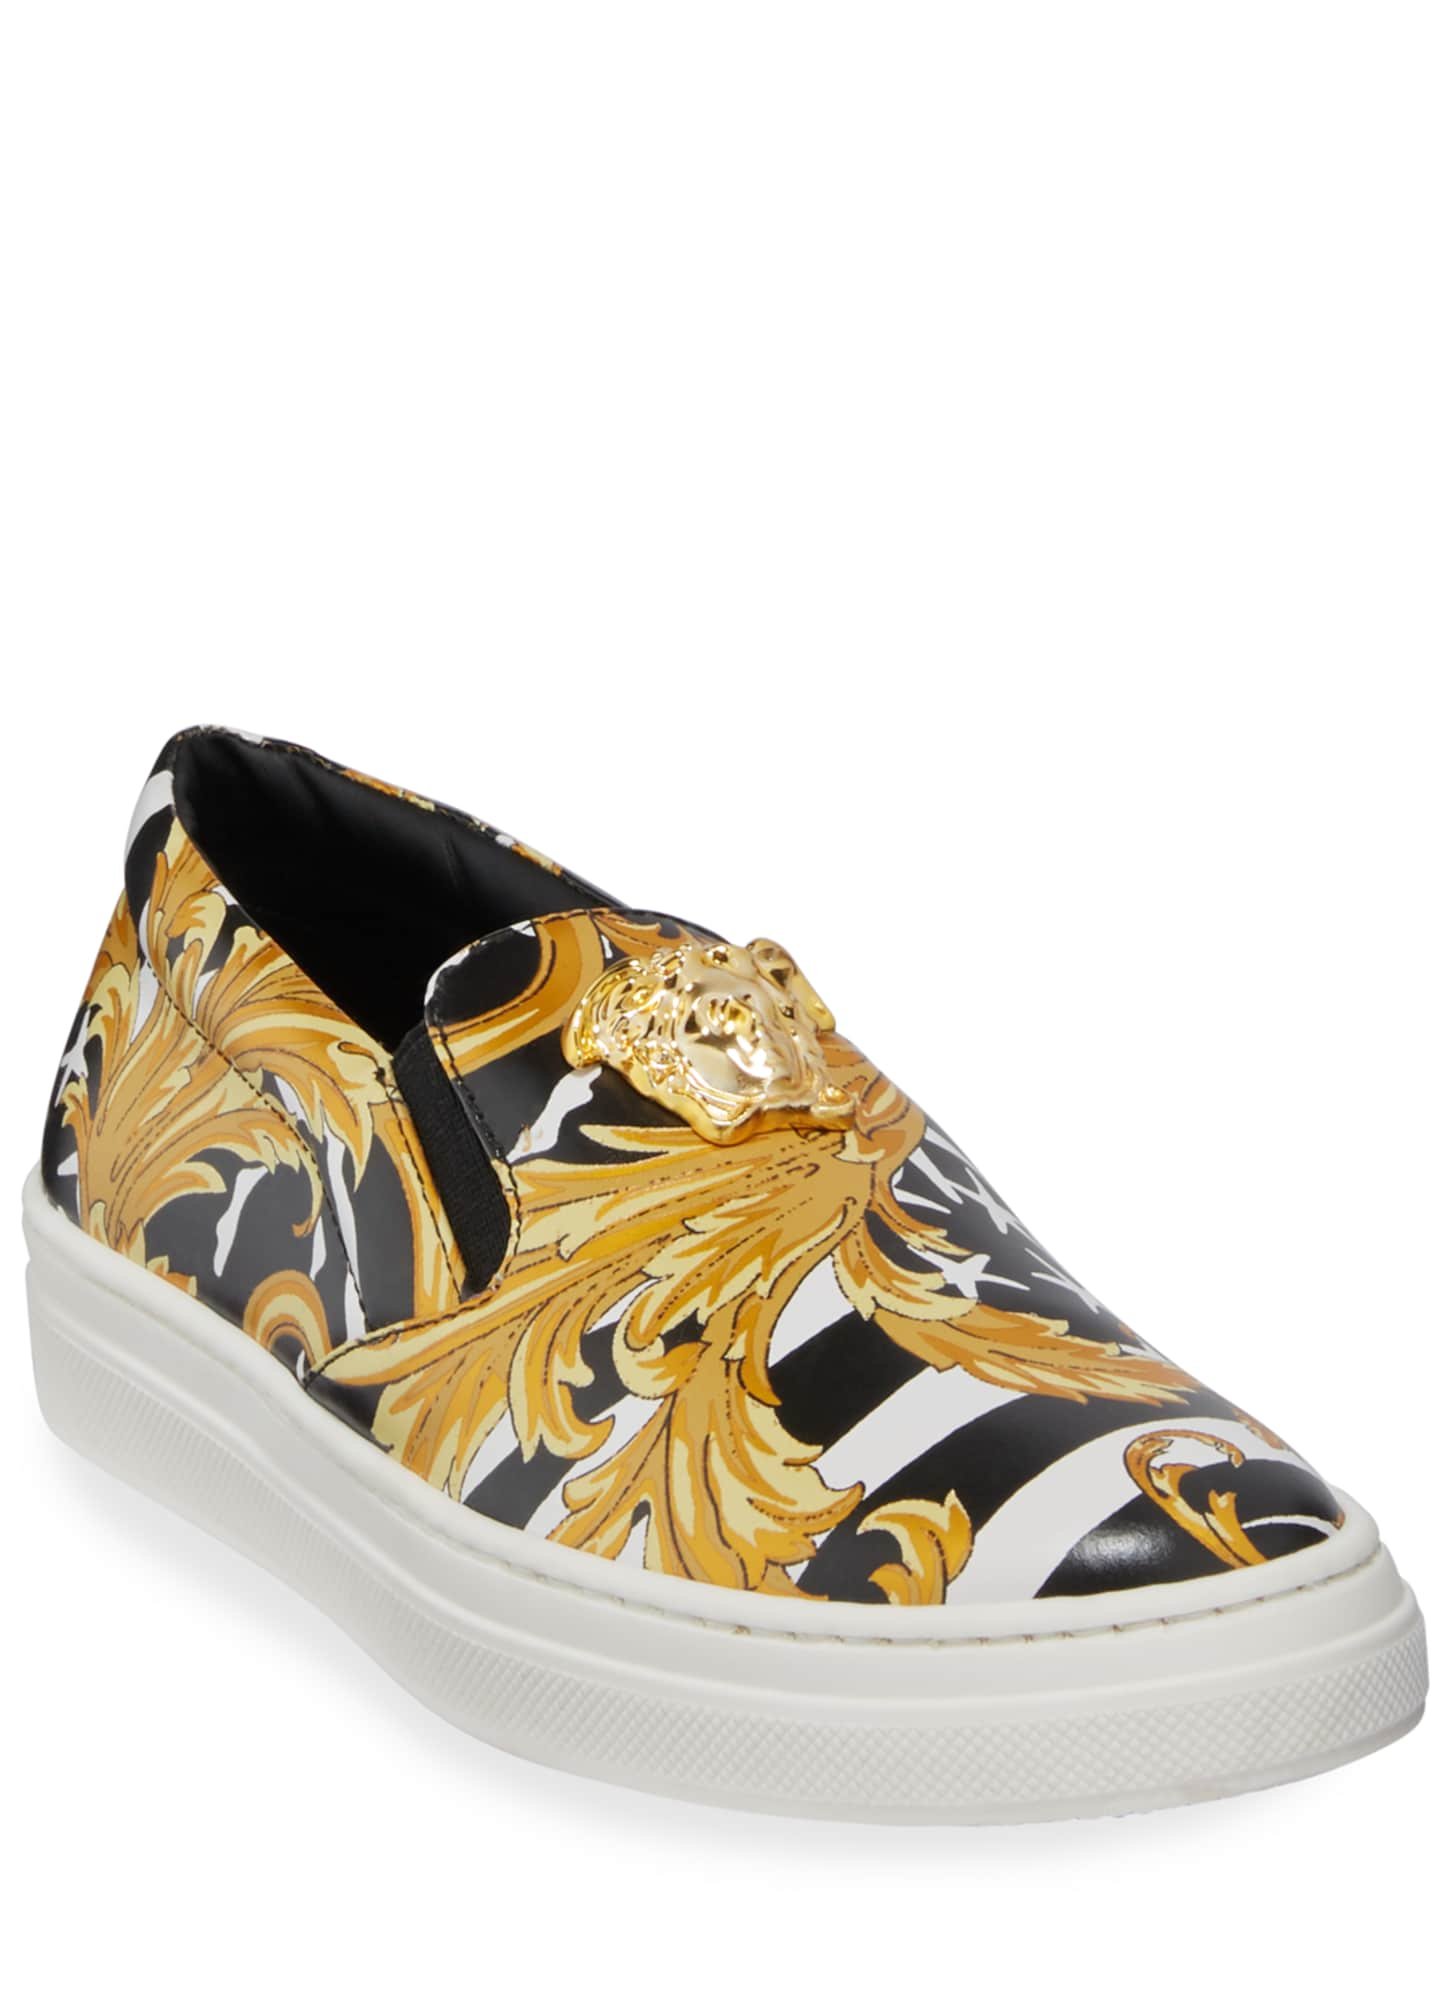 Versace Barocco Print Slip-On Sneakers, Toddler